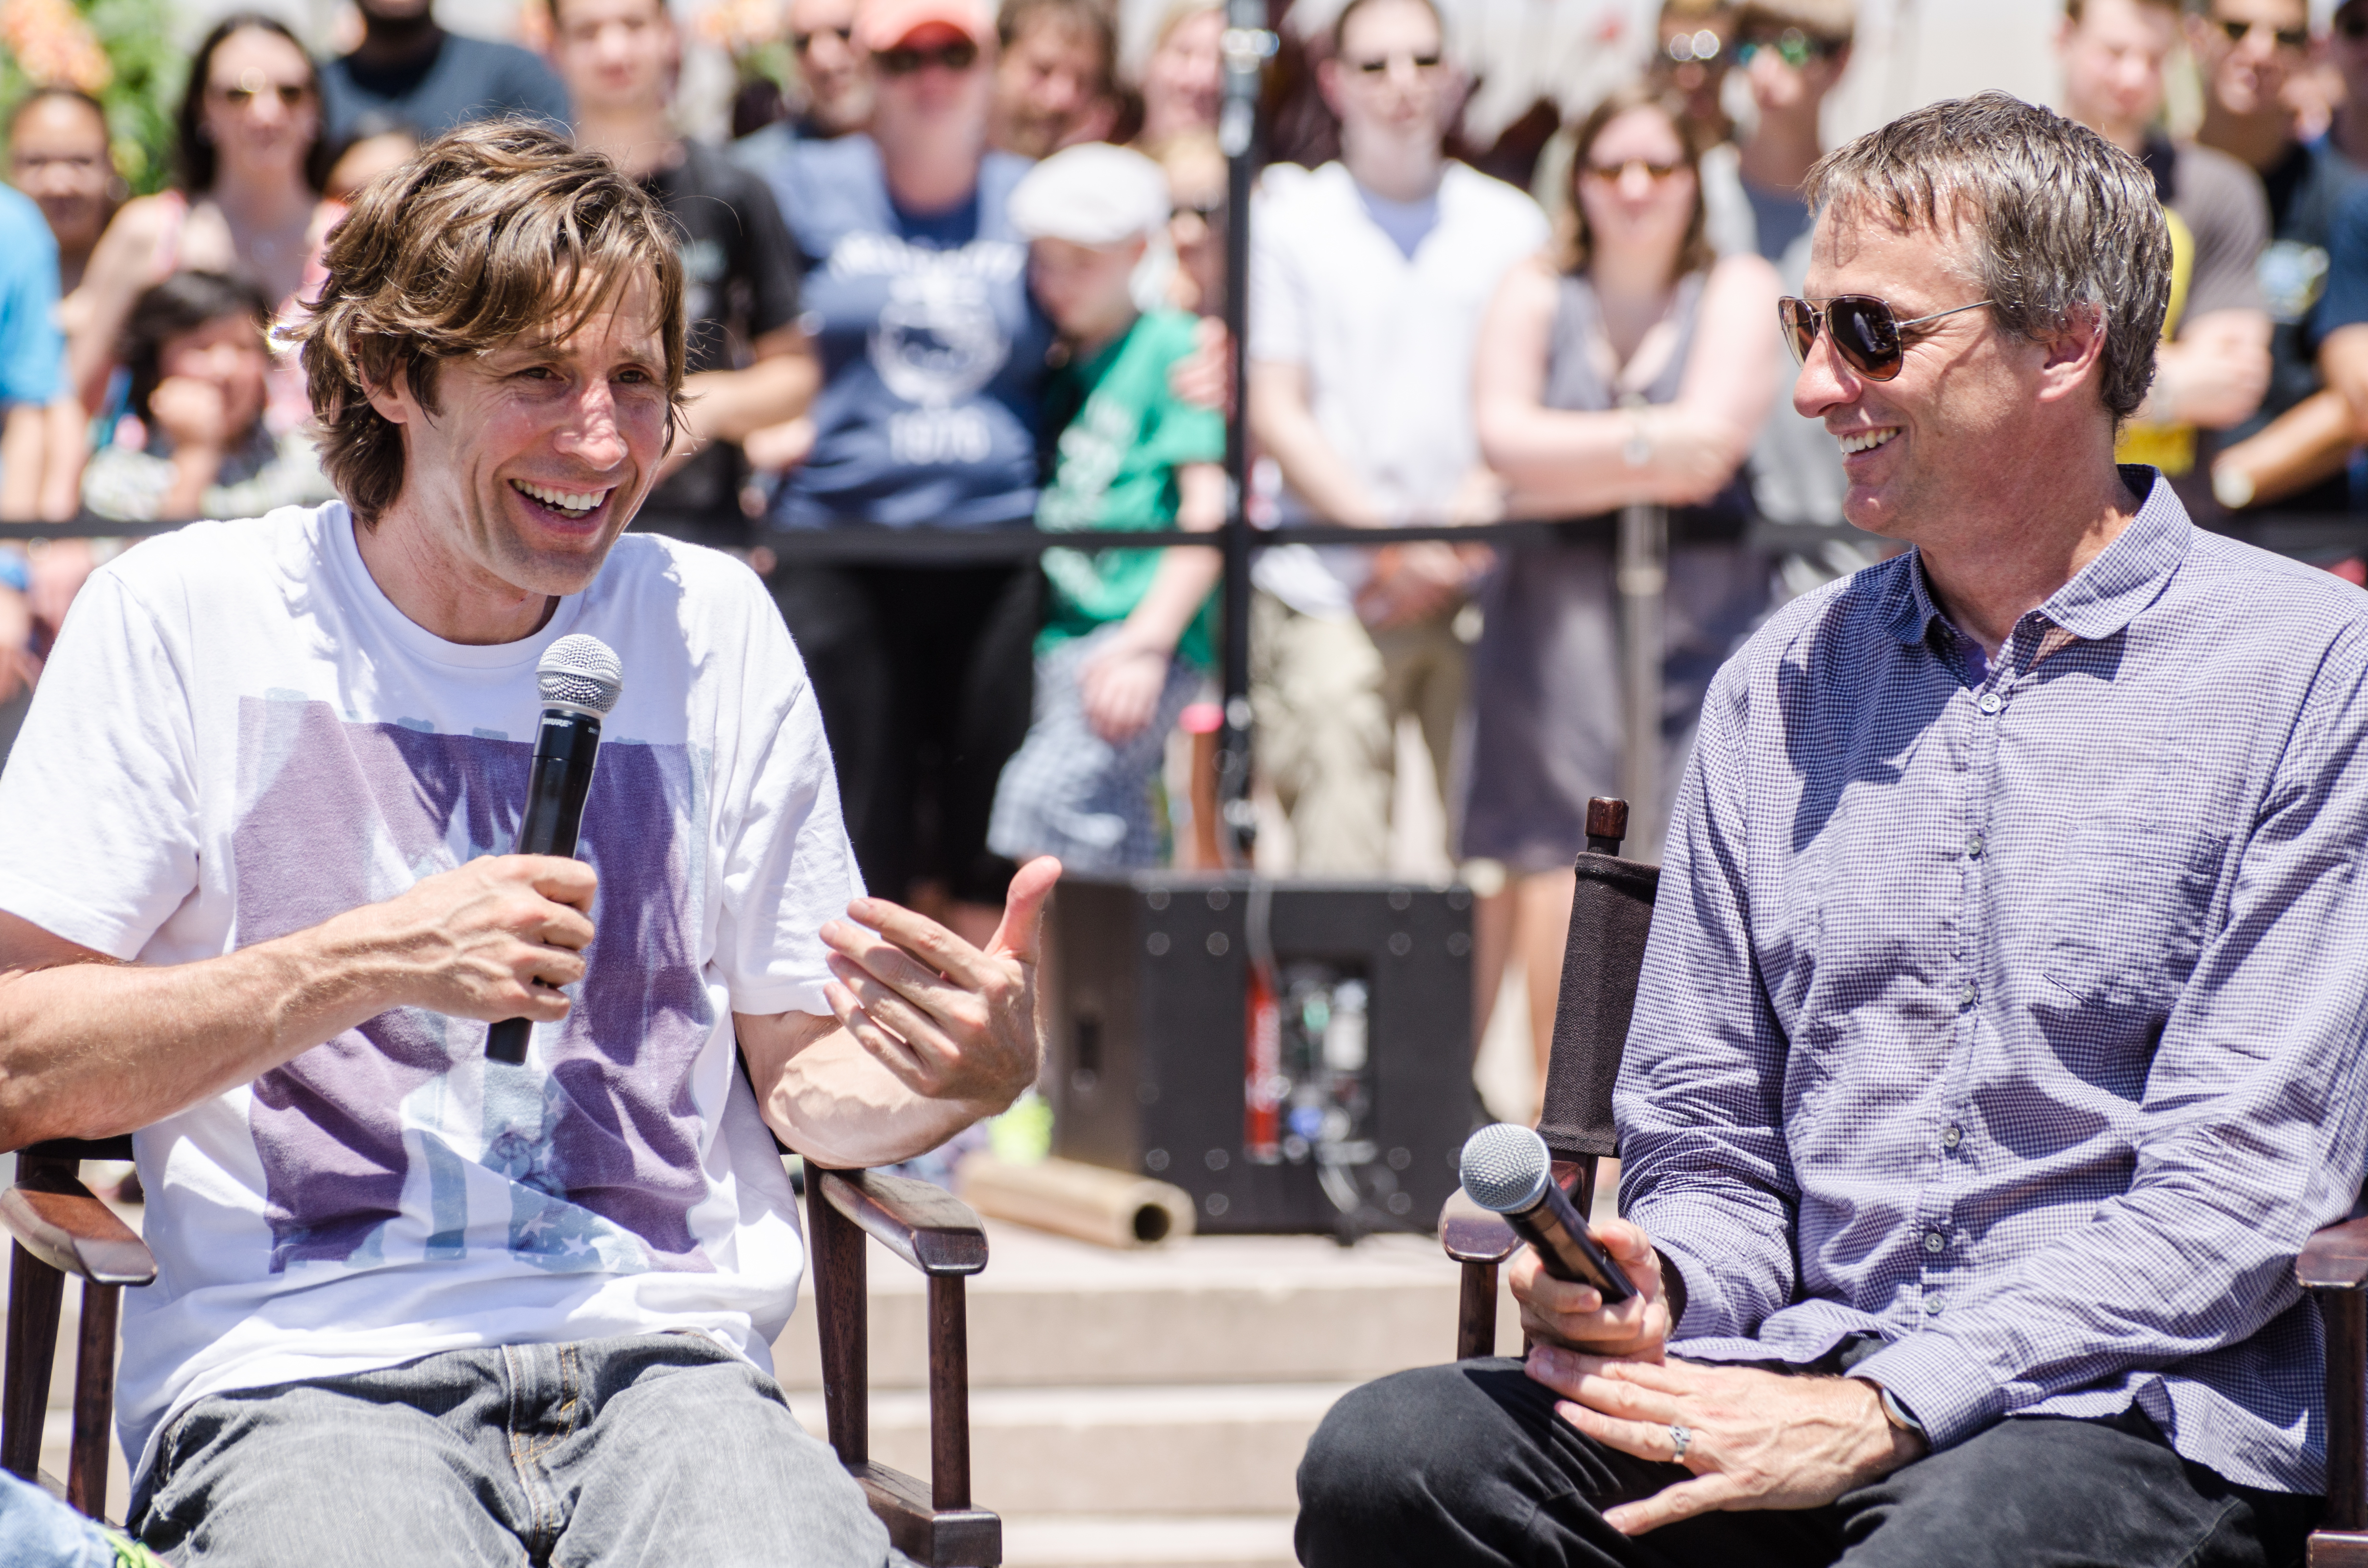 Rodney Mullen and Tony Hawk talk about their inventive process during one of our panels.